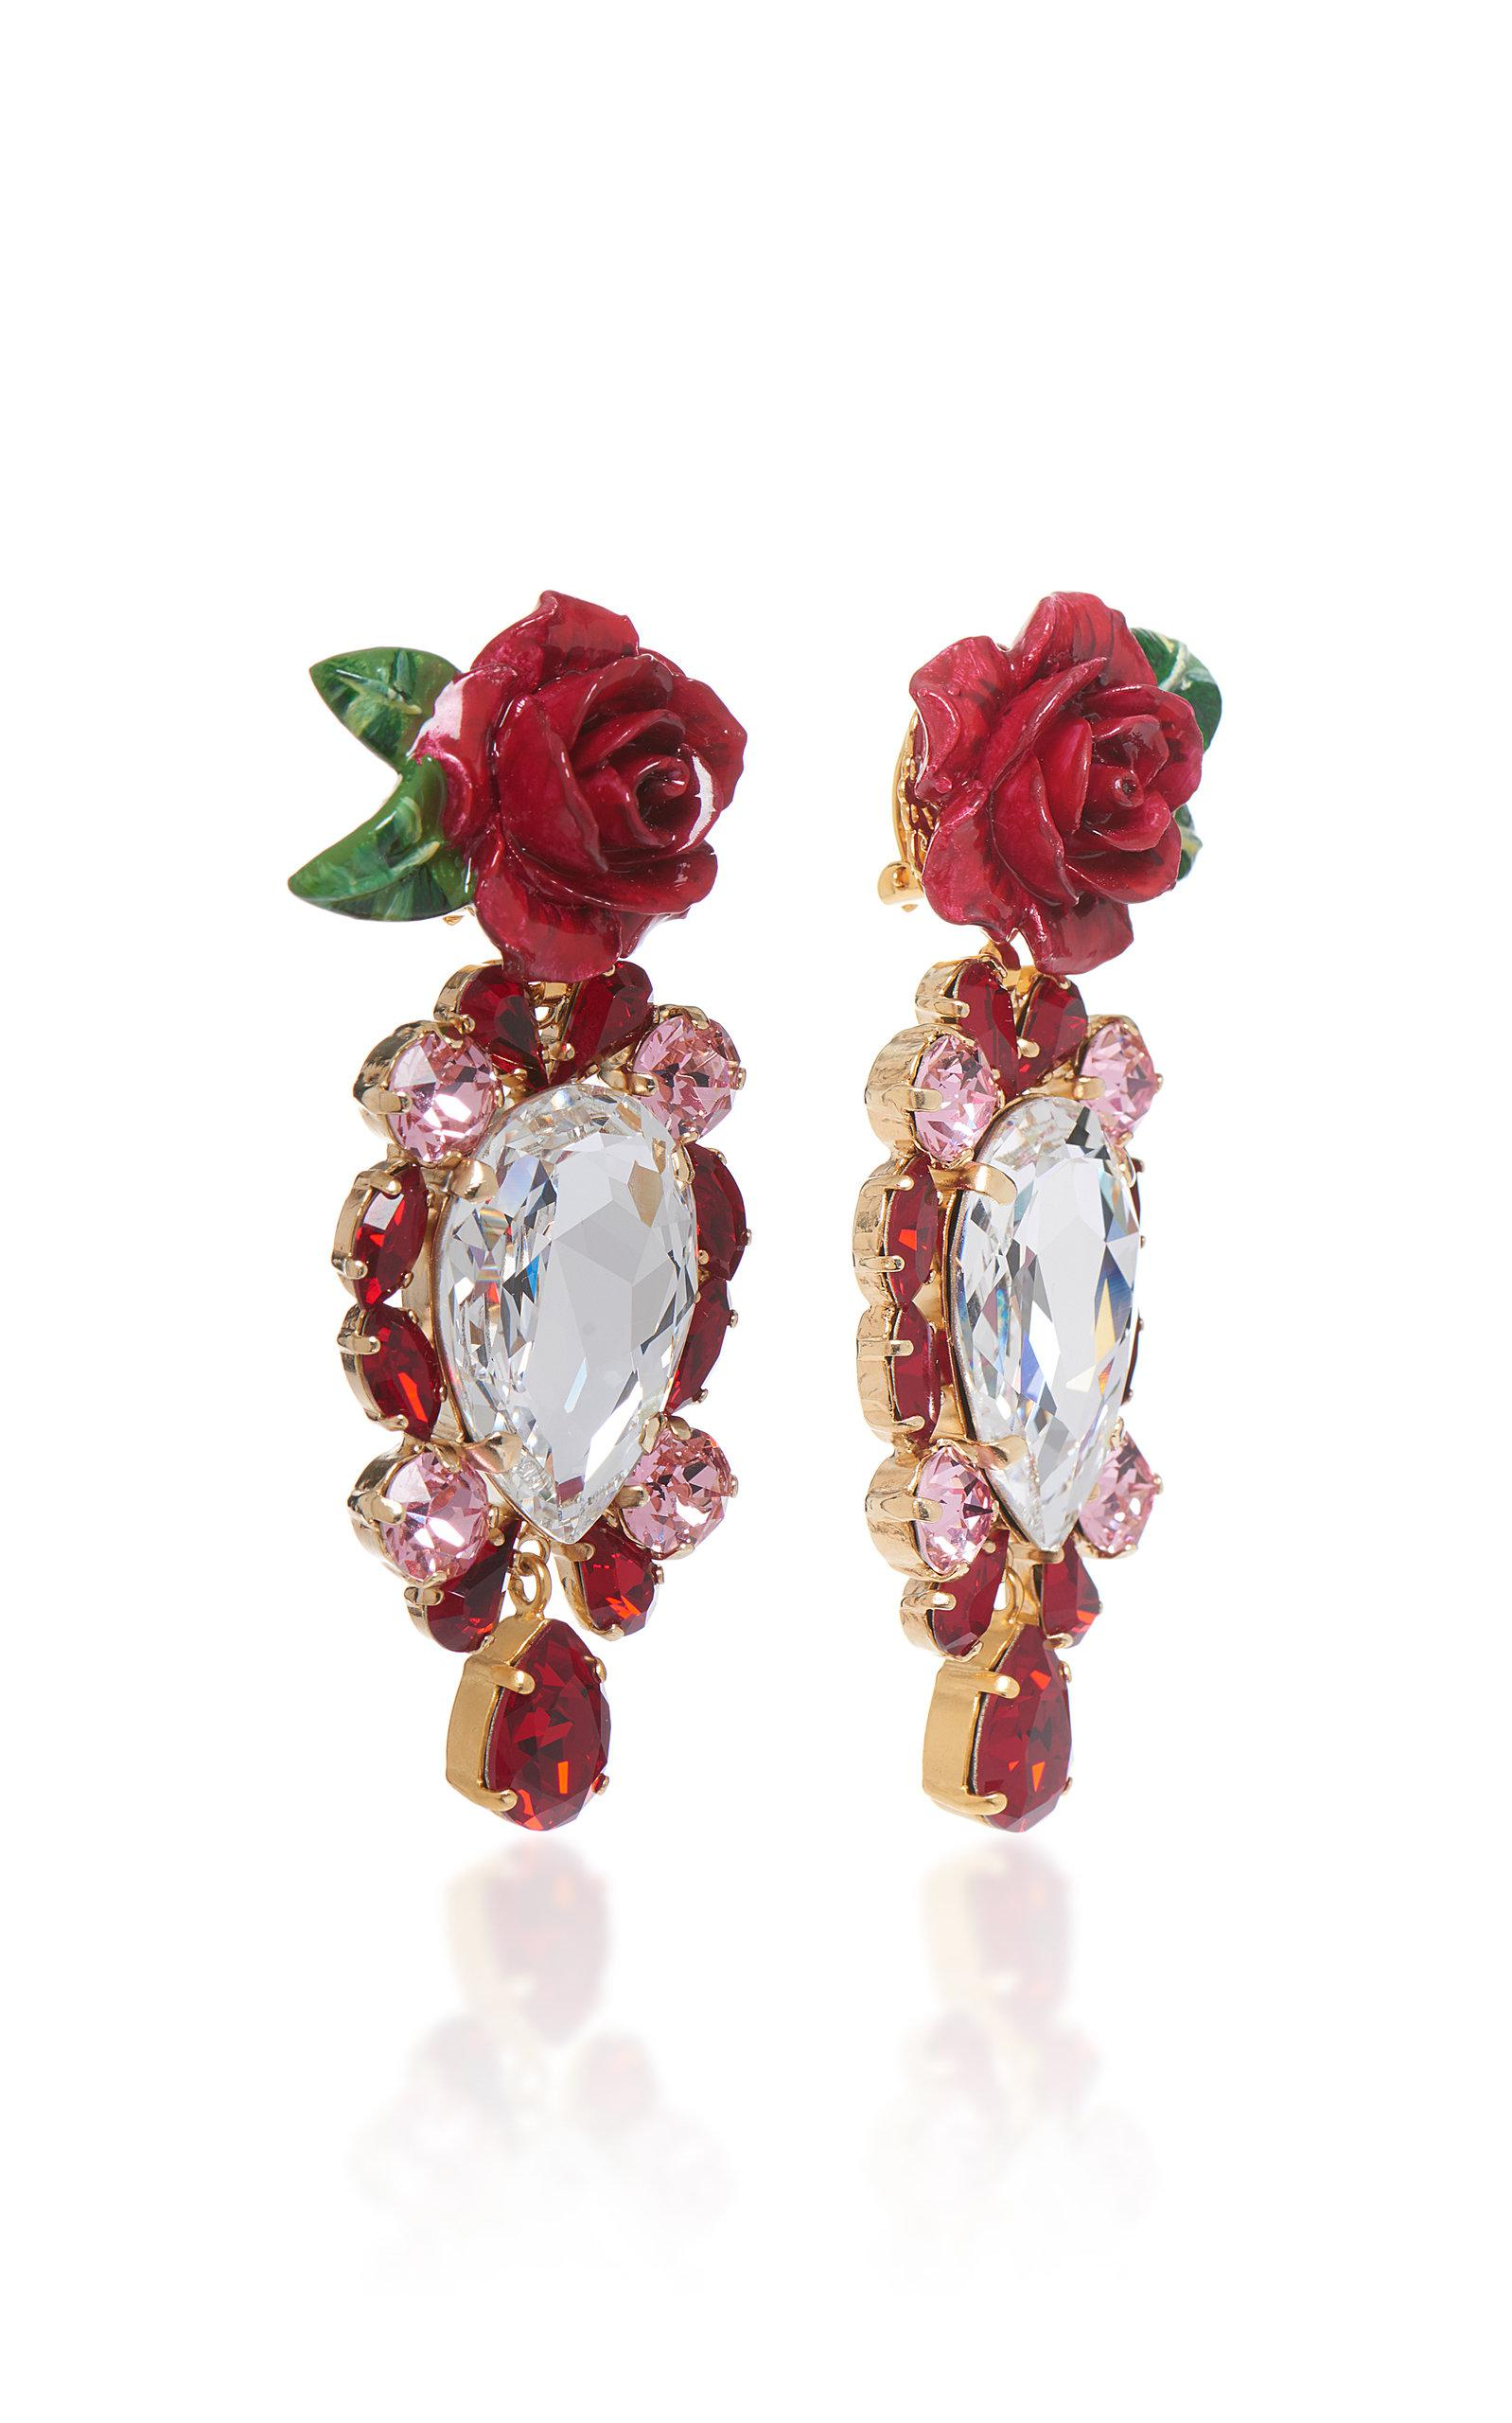 Rosetto Silver-Tone Brass and Crystal Earrings Dolce & Gabbana R8eprjbLS